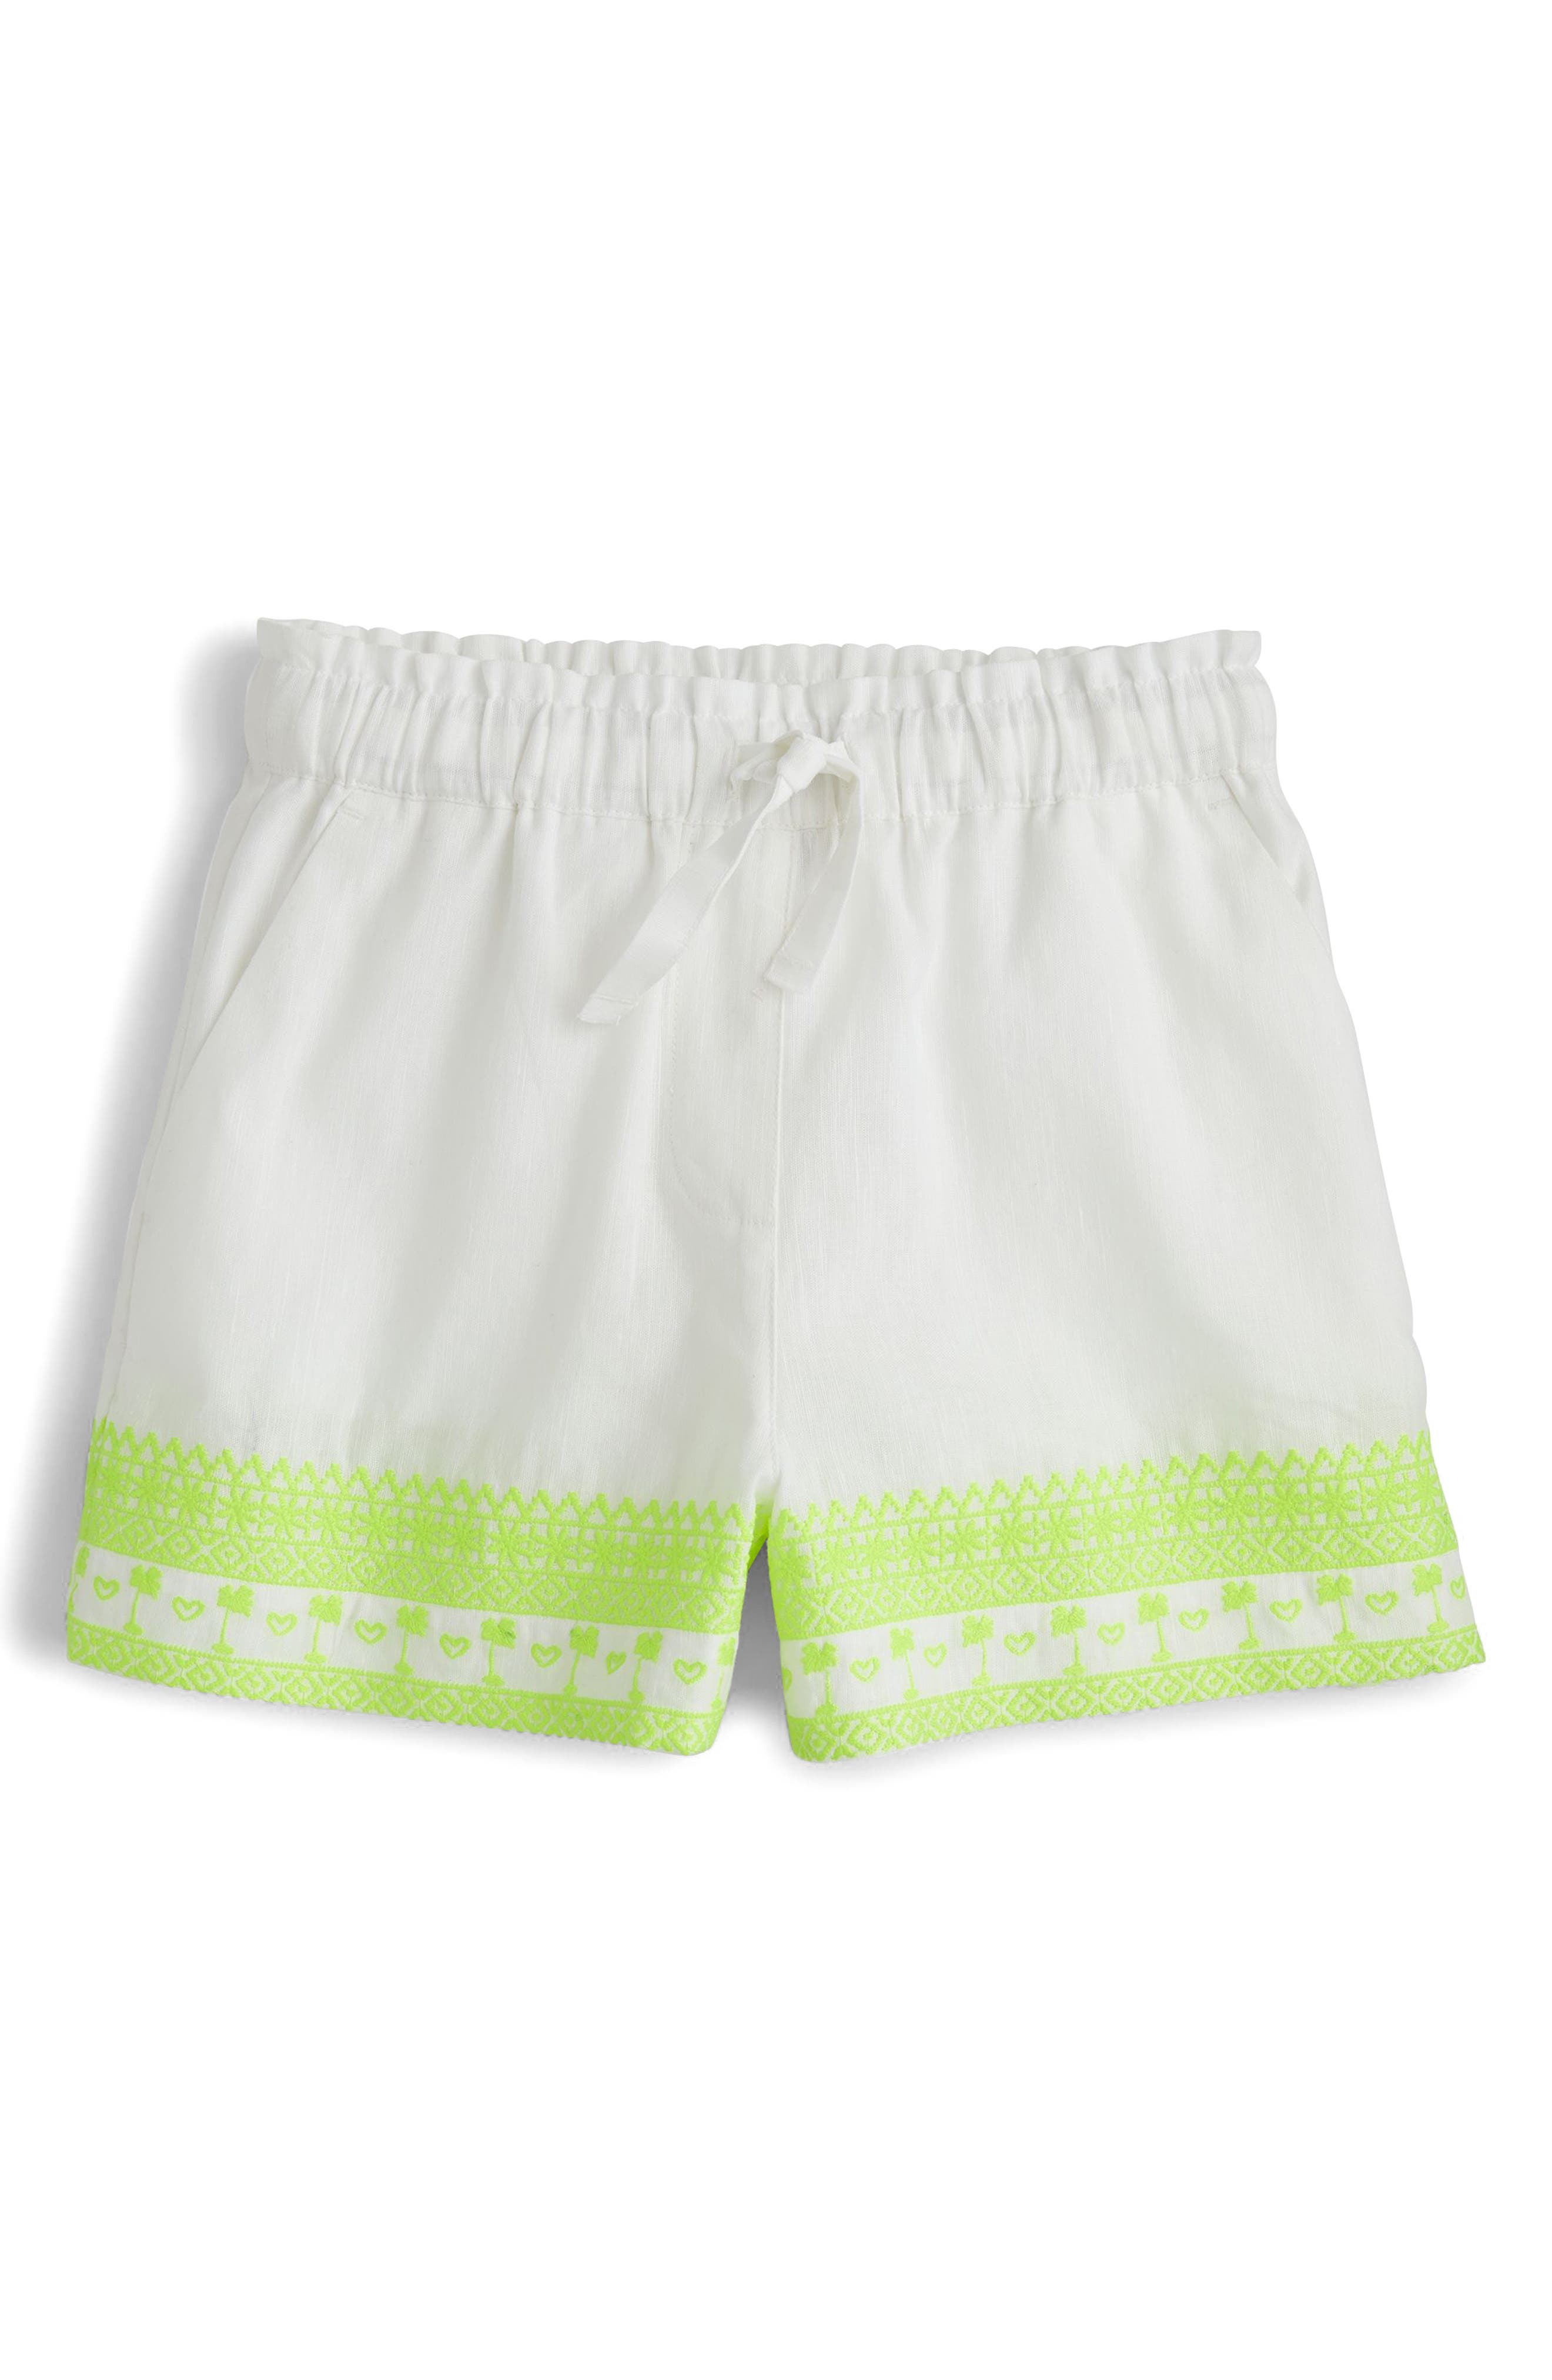 Skirty Embroidered Shorts,                             Main thumbnail 1, color,                             White